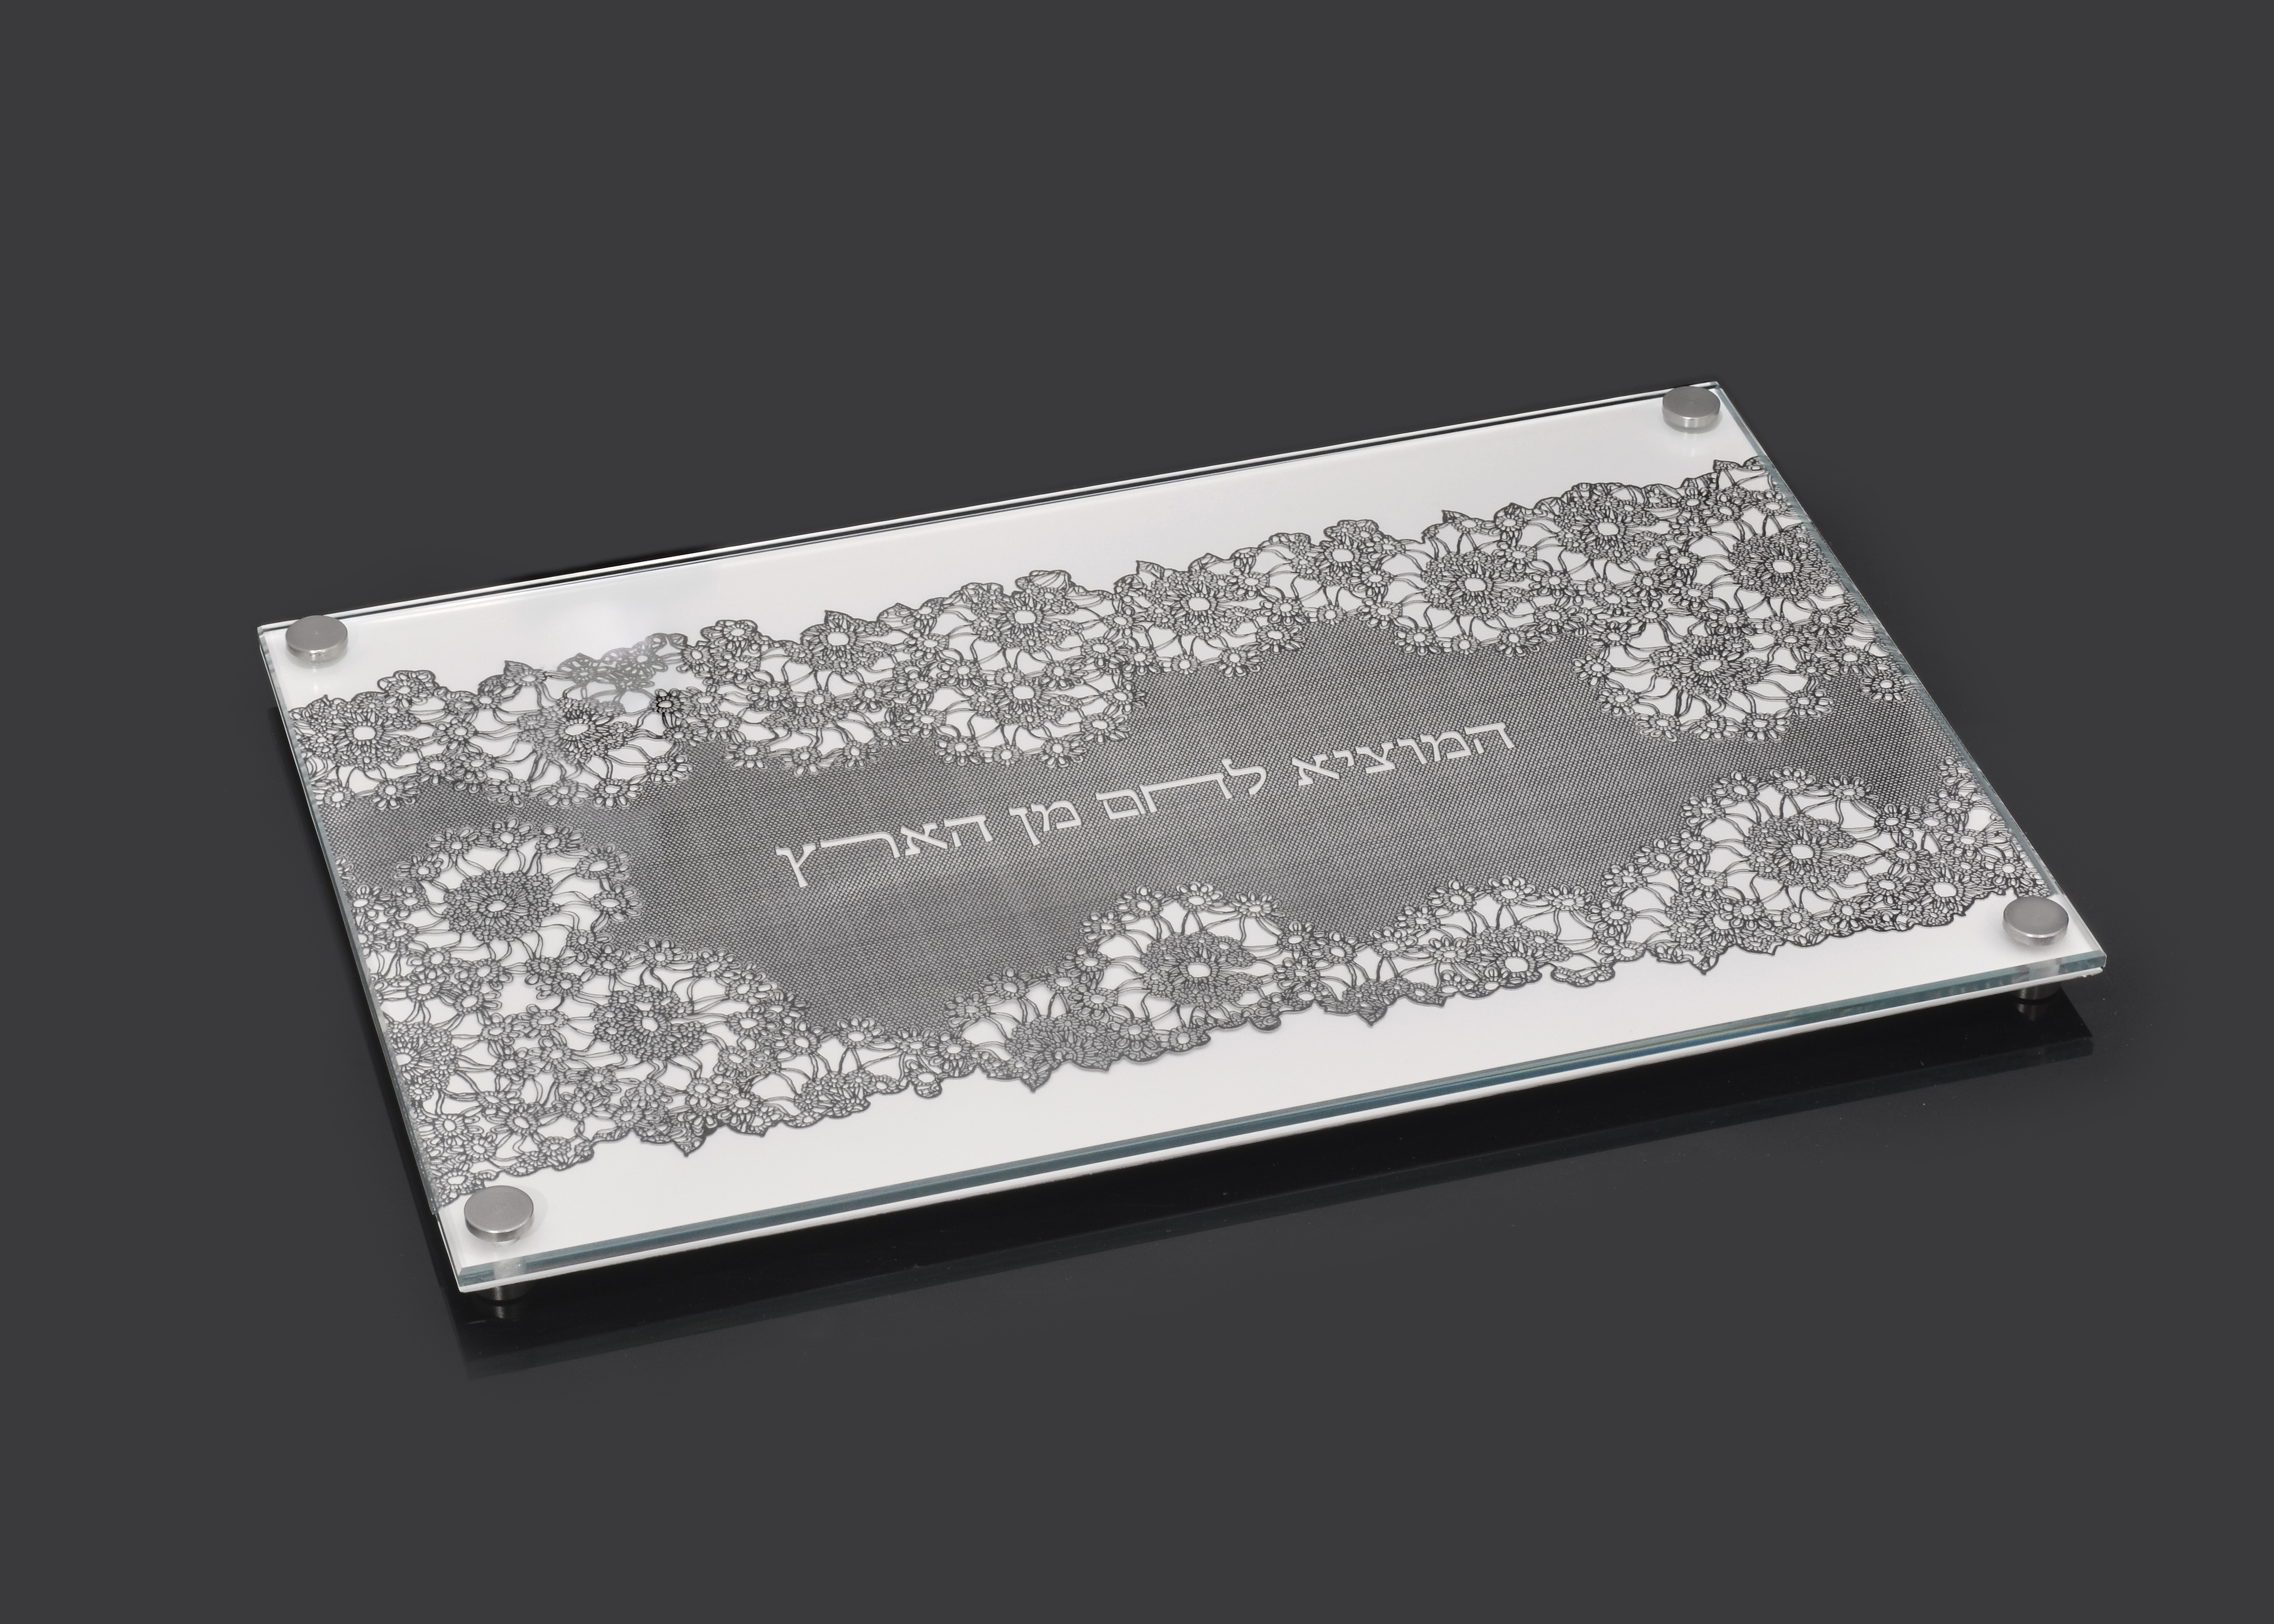 Late Blooming - Challah Board  by Metal Lace Art